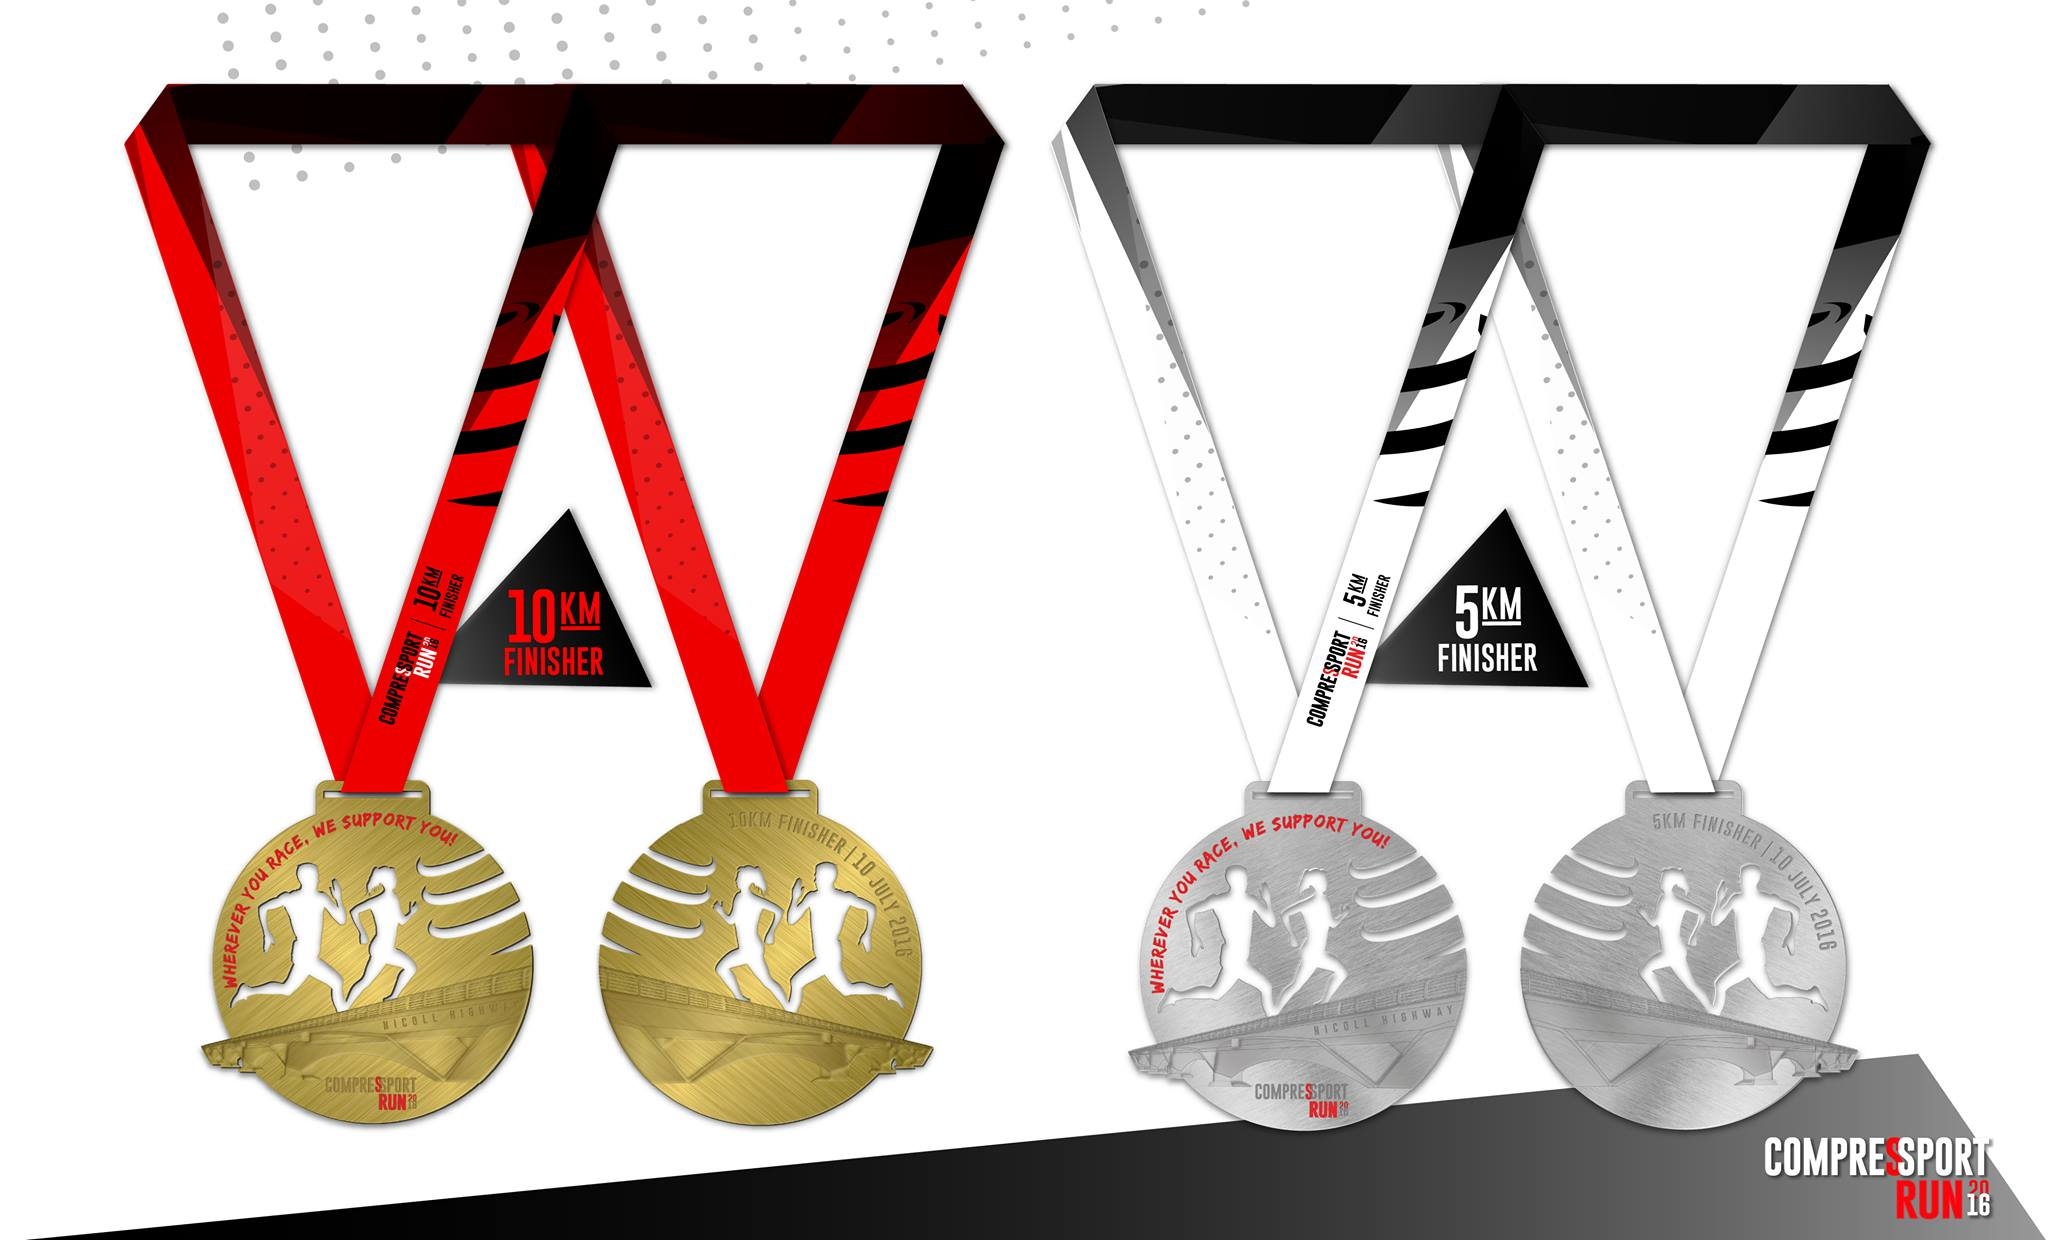 compressport run medals